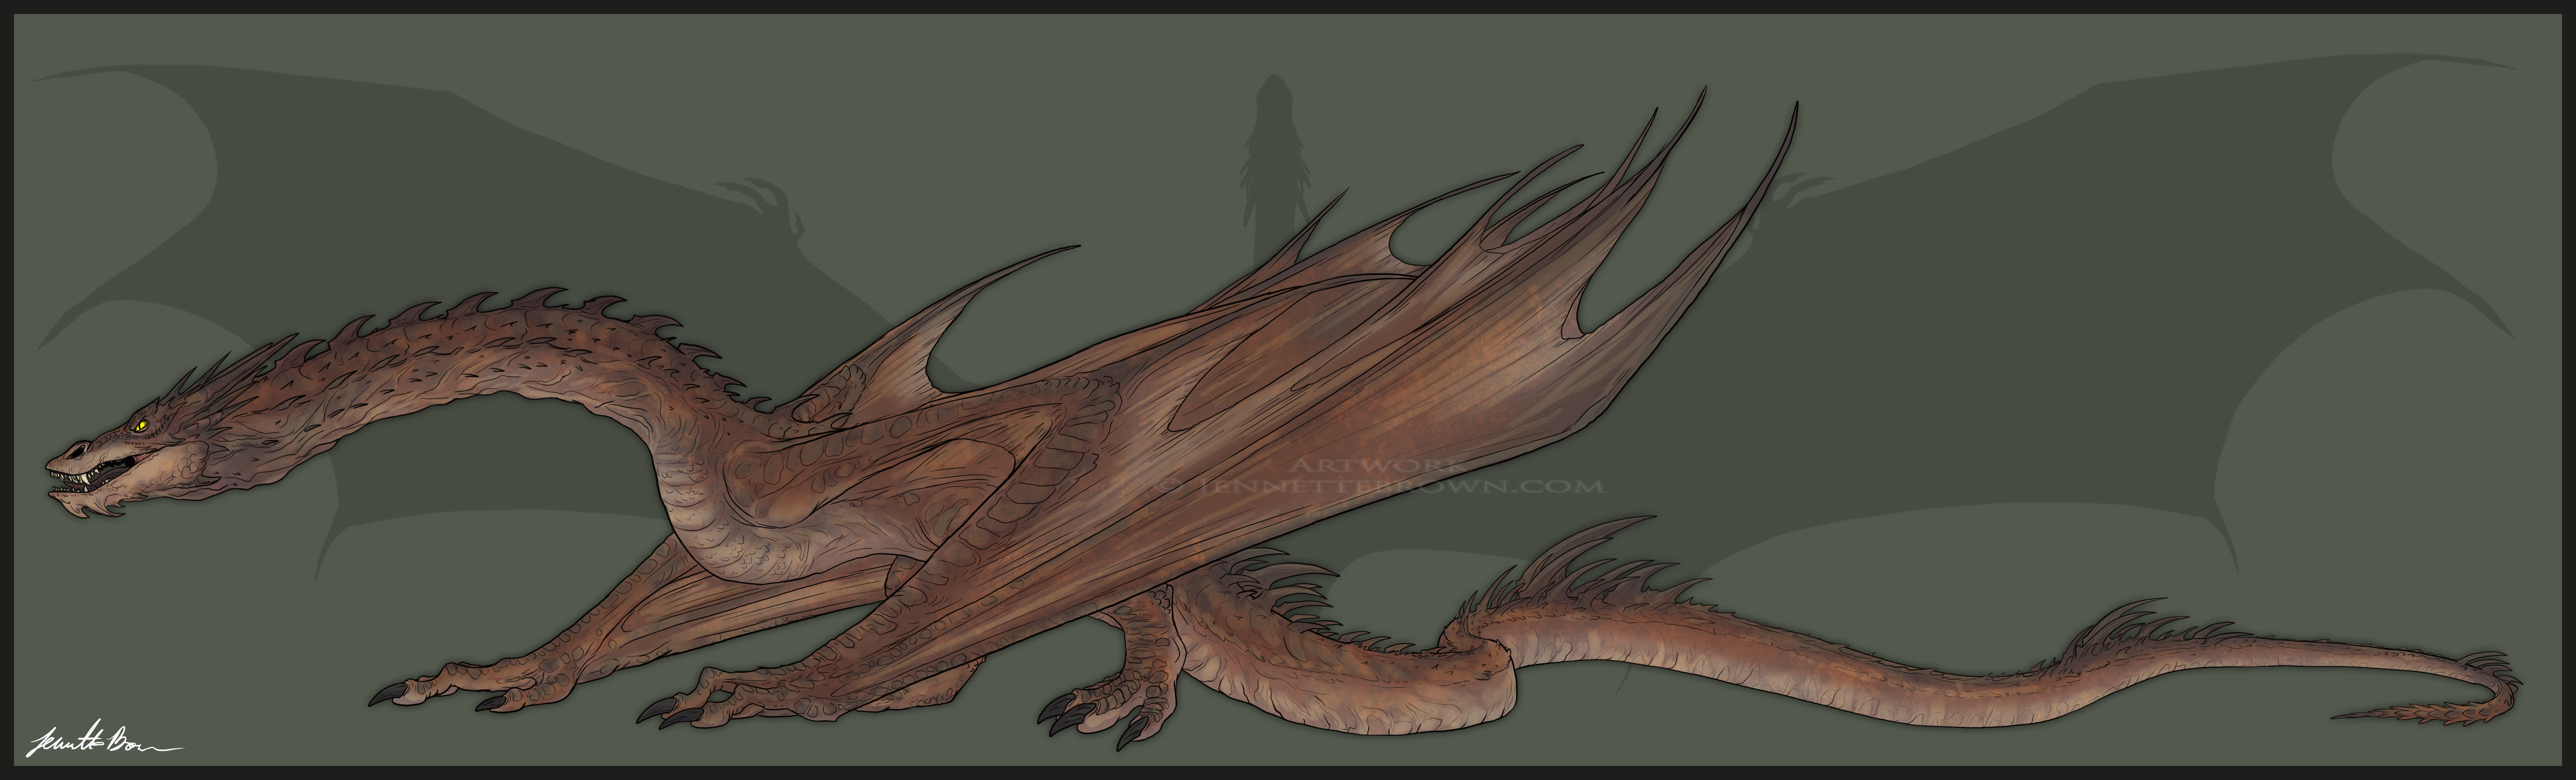 Smaug Full Body Reference By Sugarpoultry On DeviantArt